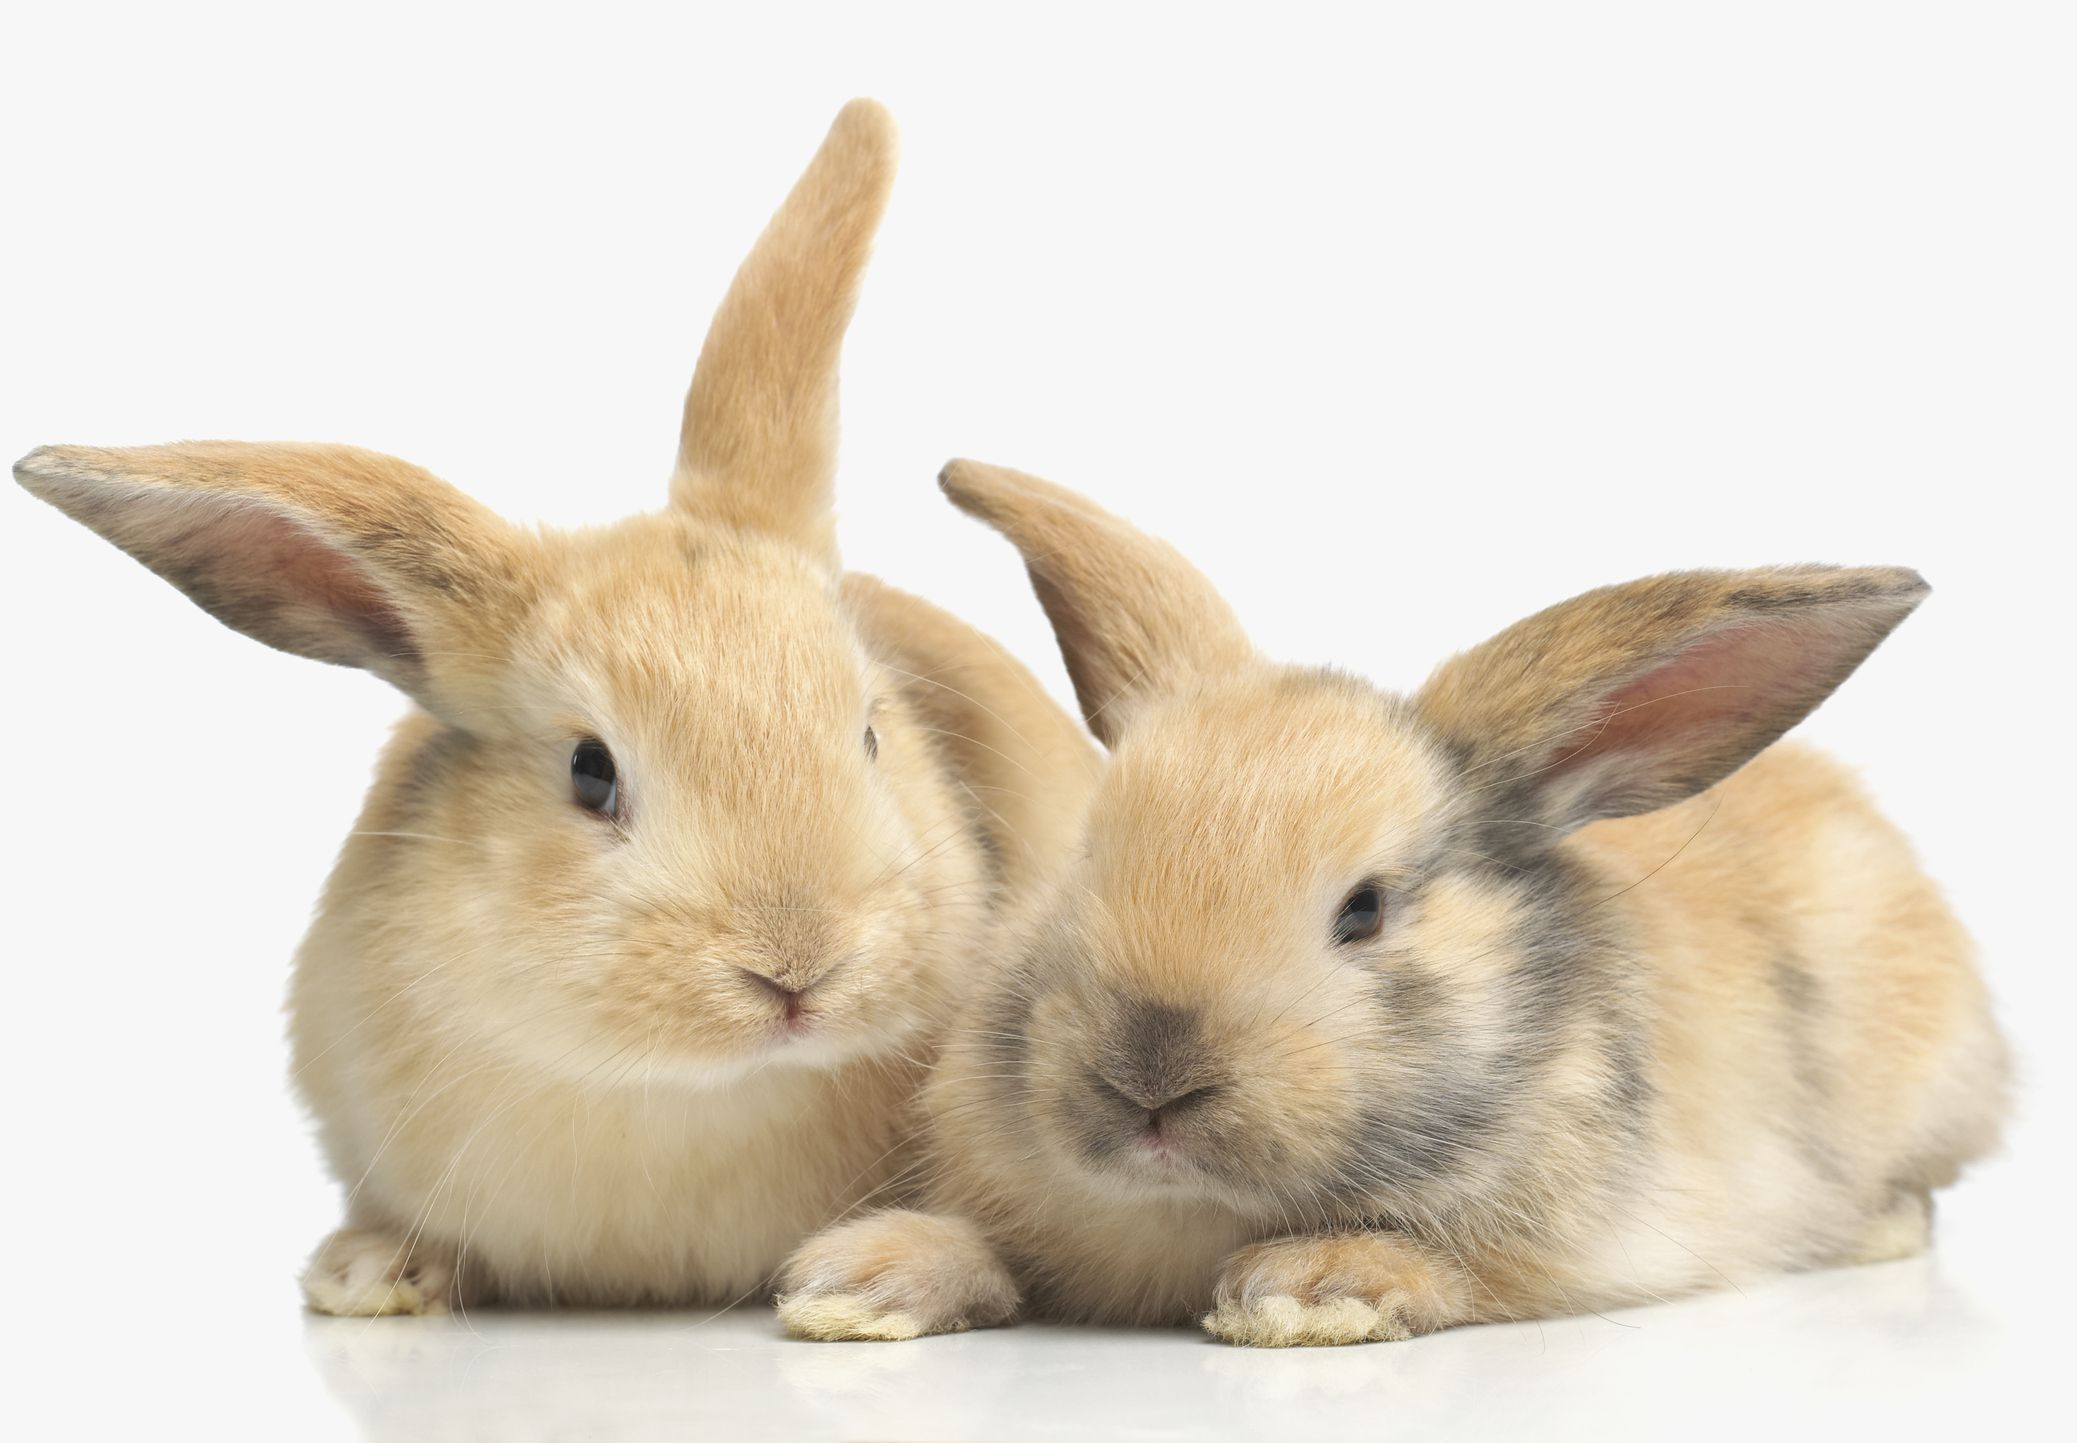 46 Rabbit Breeds to Keep as Pets - Pet Rabbits